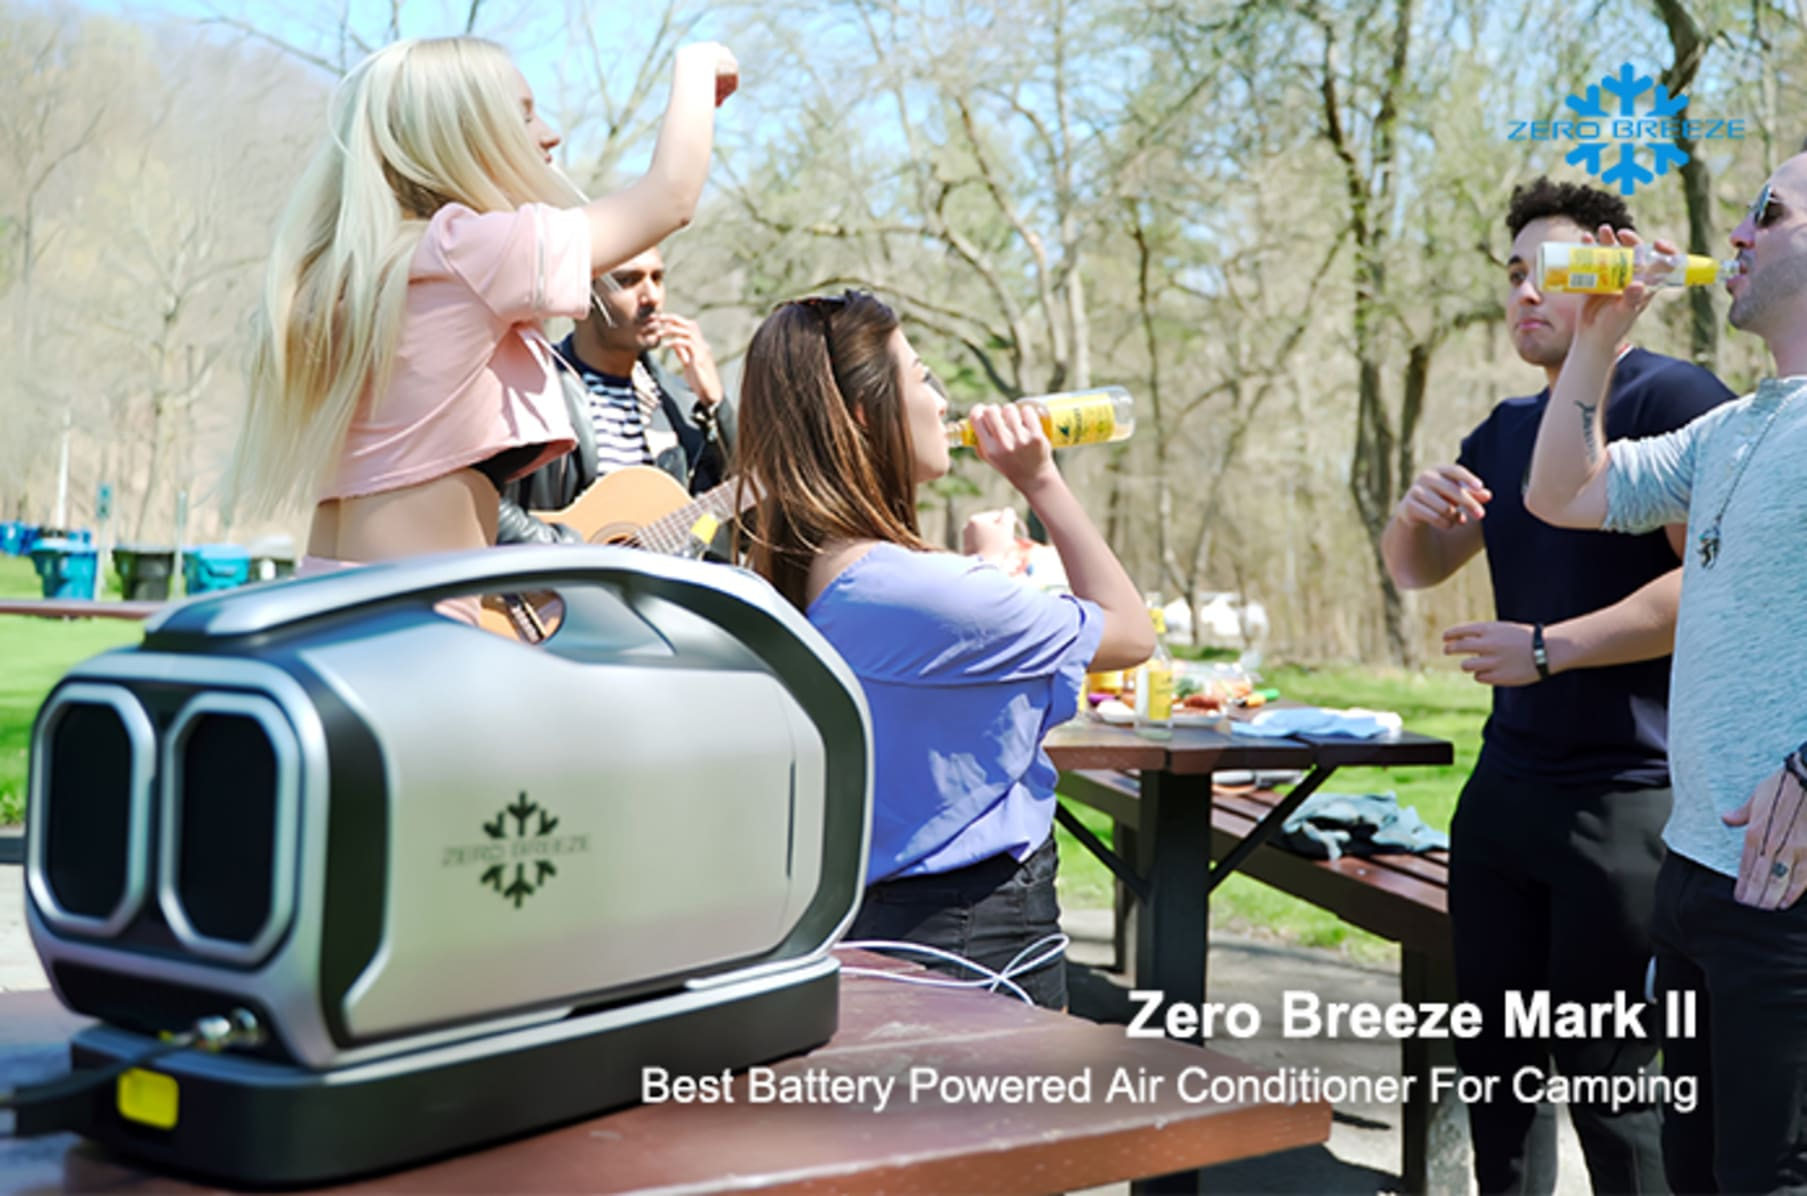 Zero Breeze Mark Ⅱ battery power portable AC | Indiegogo